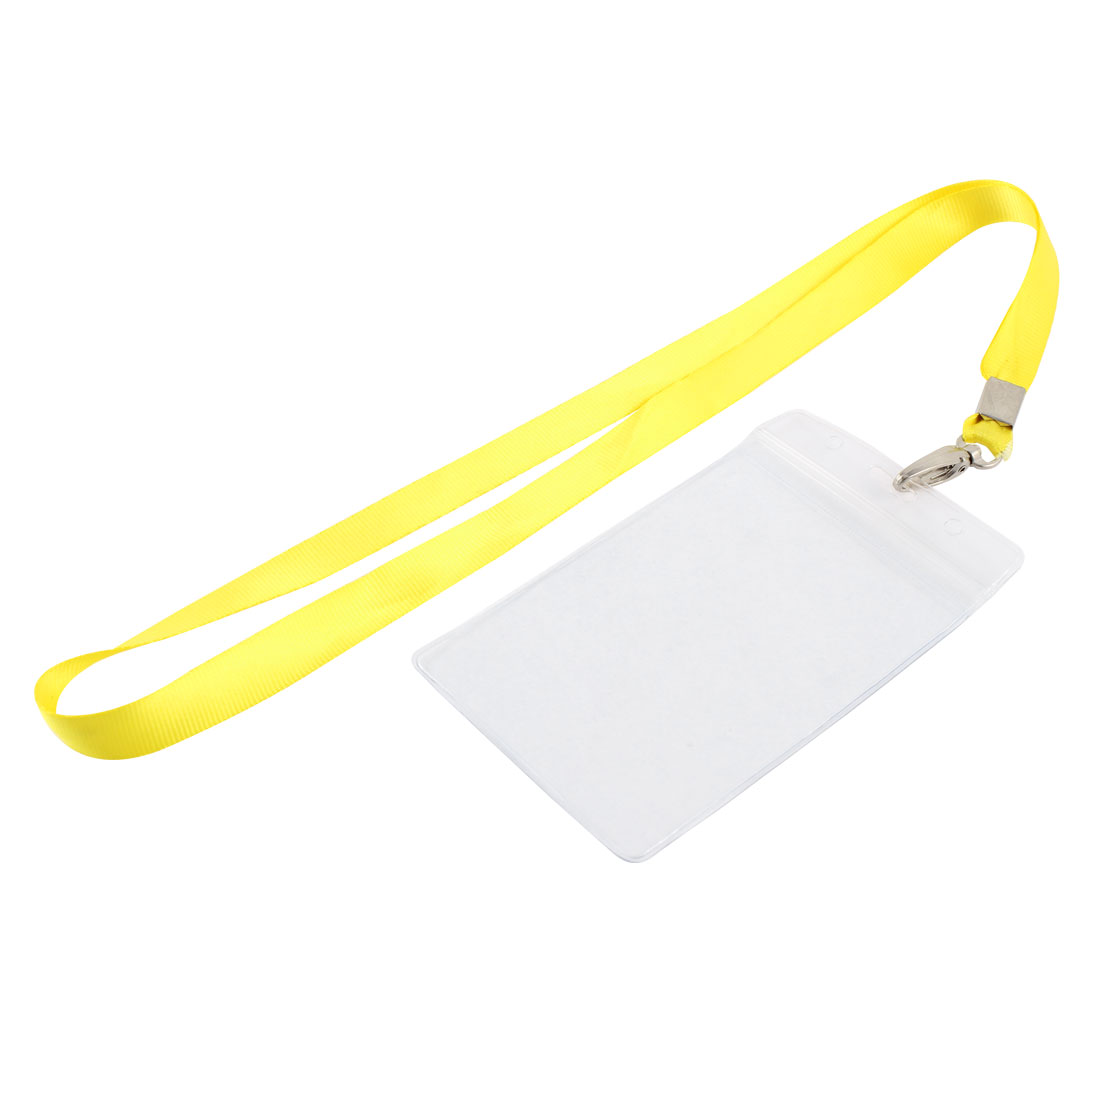 Neck Strap Plastic Vertical ID Office Business Badge Card Holder Yellow Clear